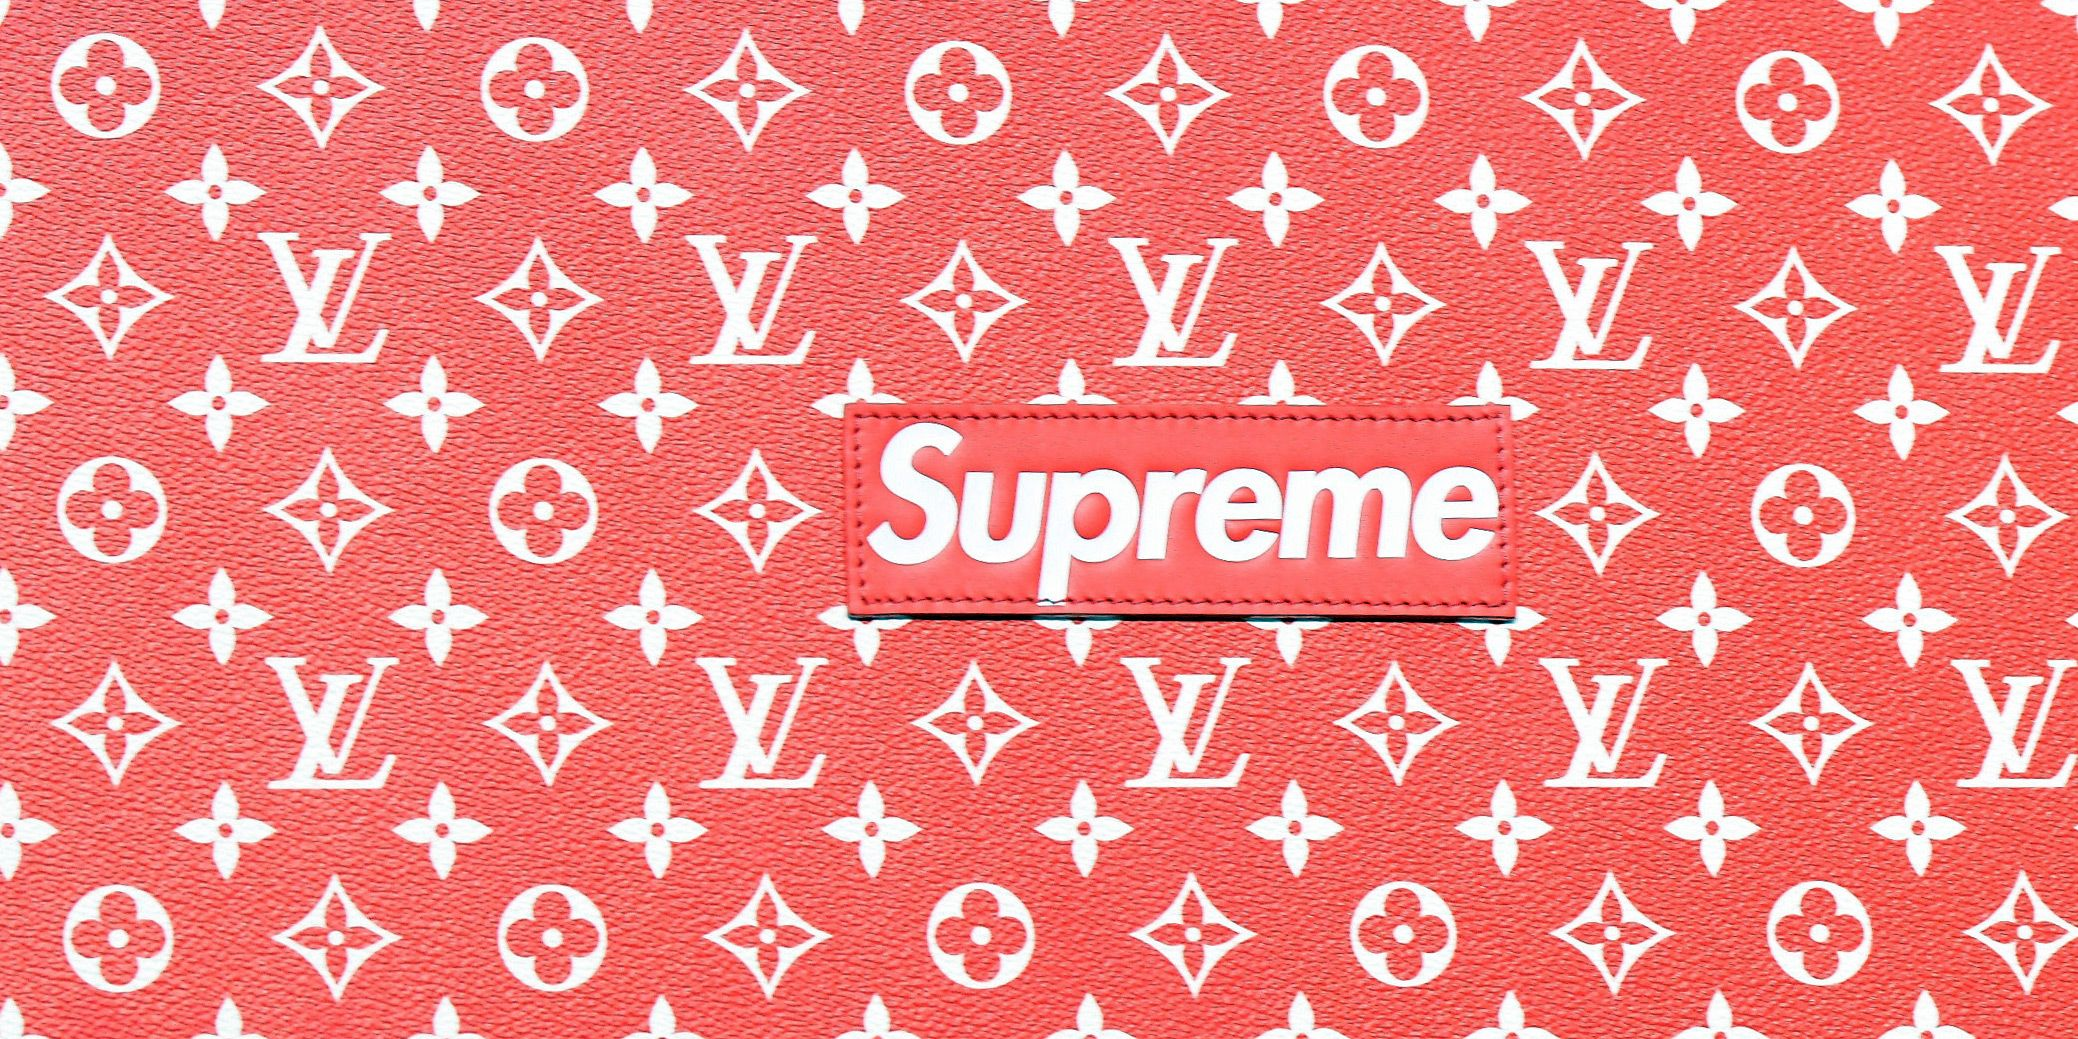 ddd12724b708 Louis Vuitton x Supreme Makes Its Official Debut